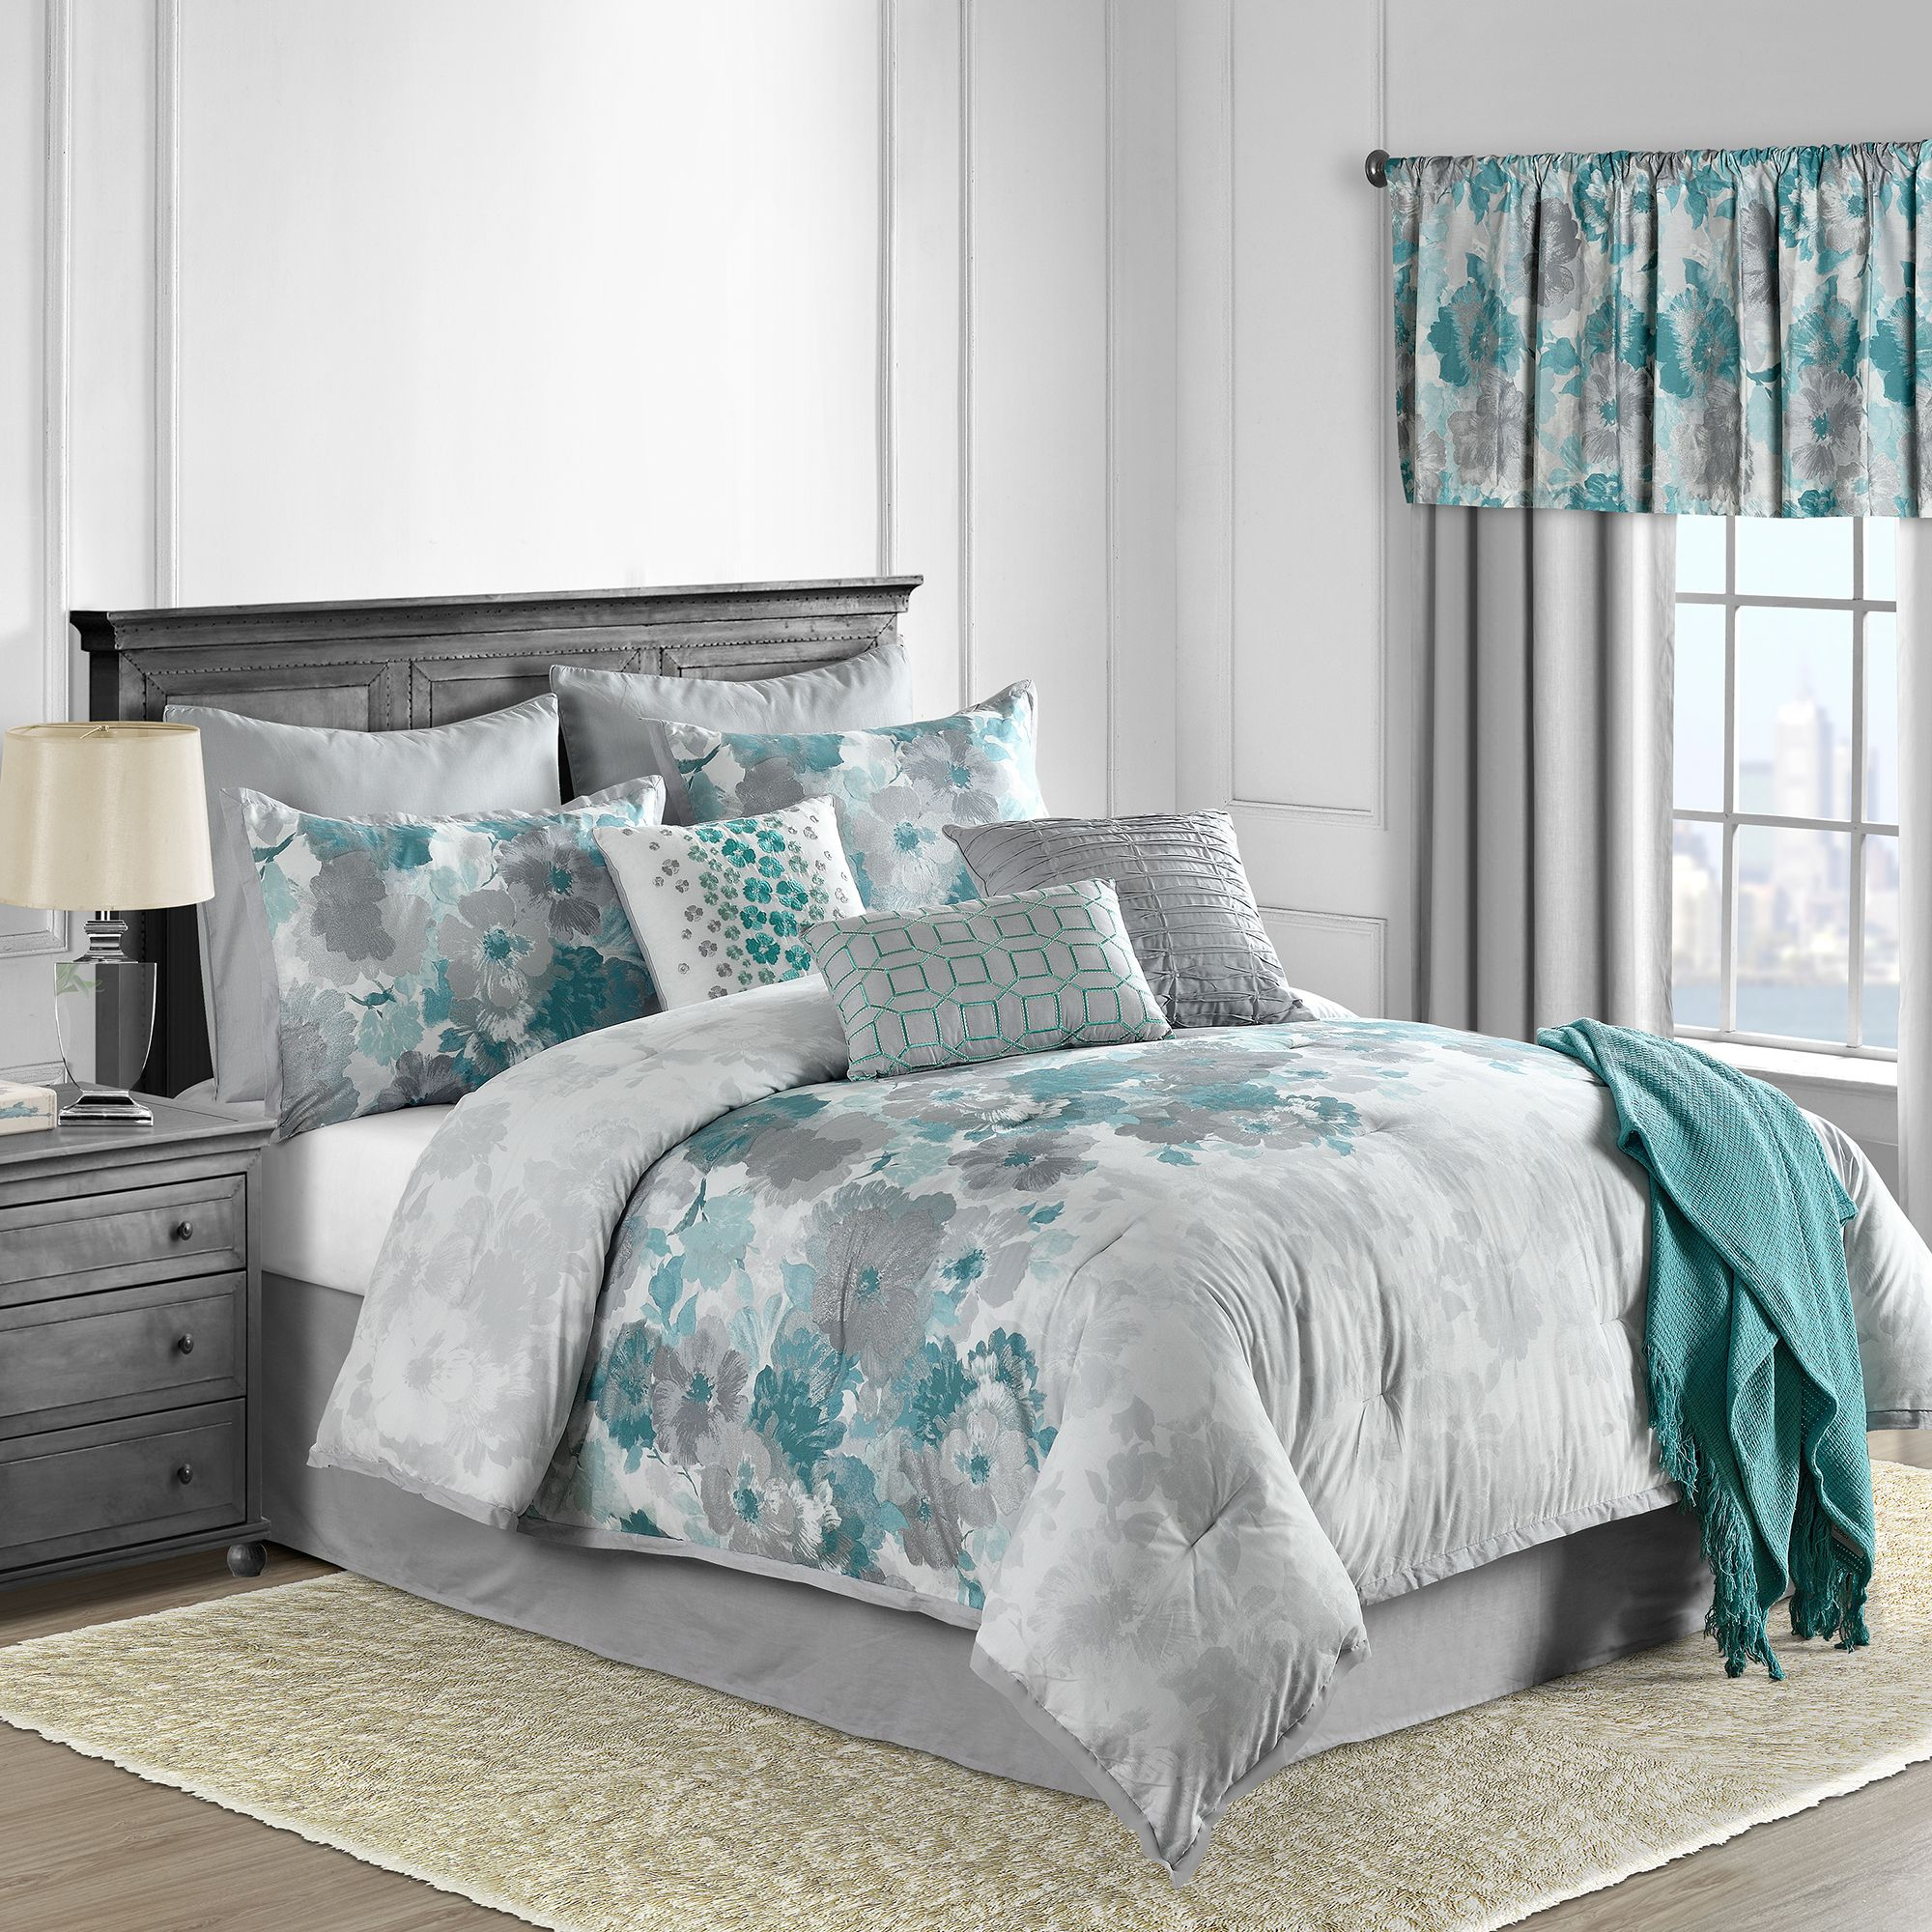 Claire 10 Piece forter Set in Teal Bed Bath & Beyond